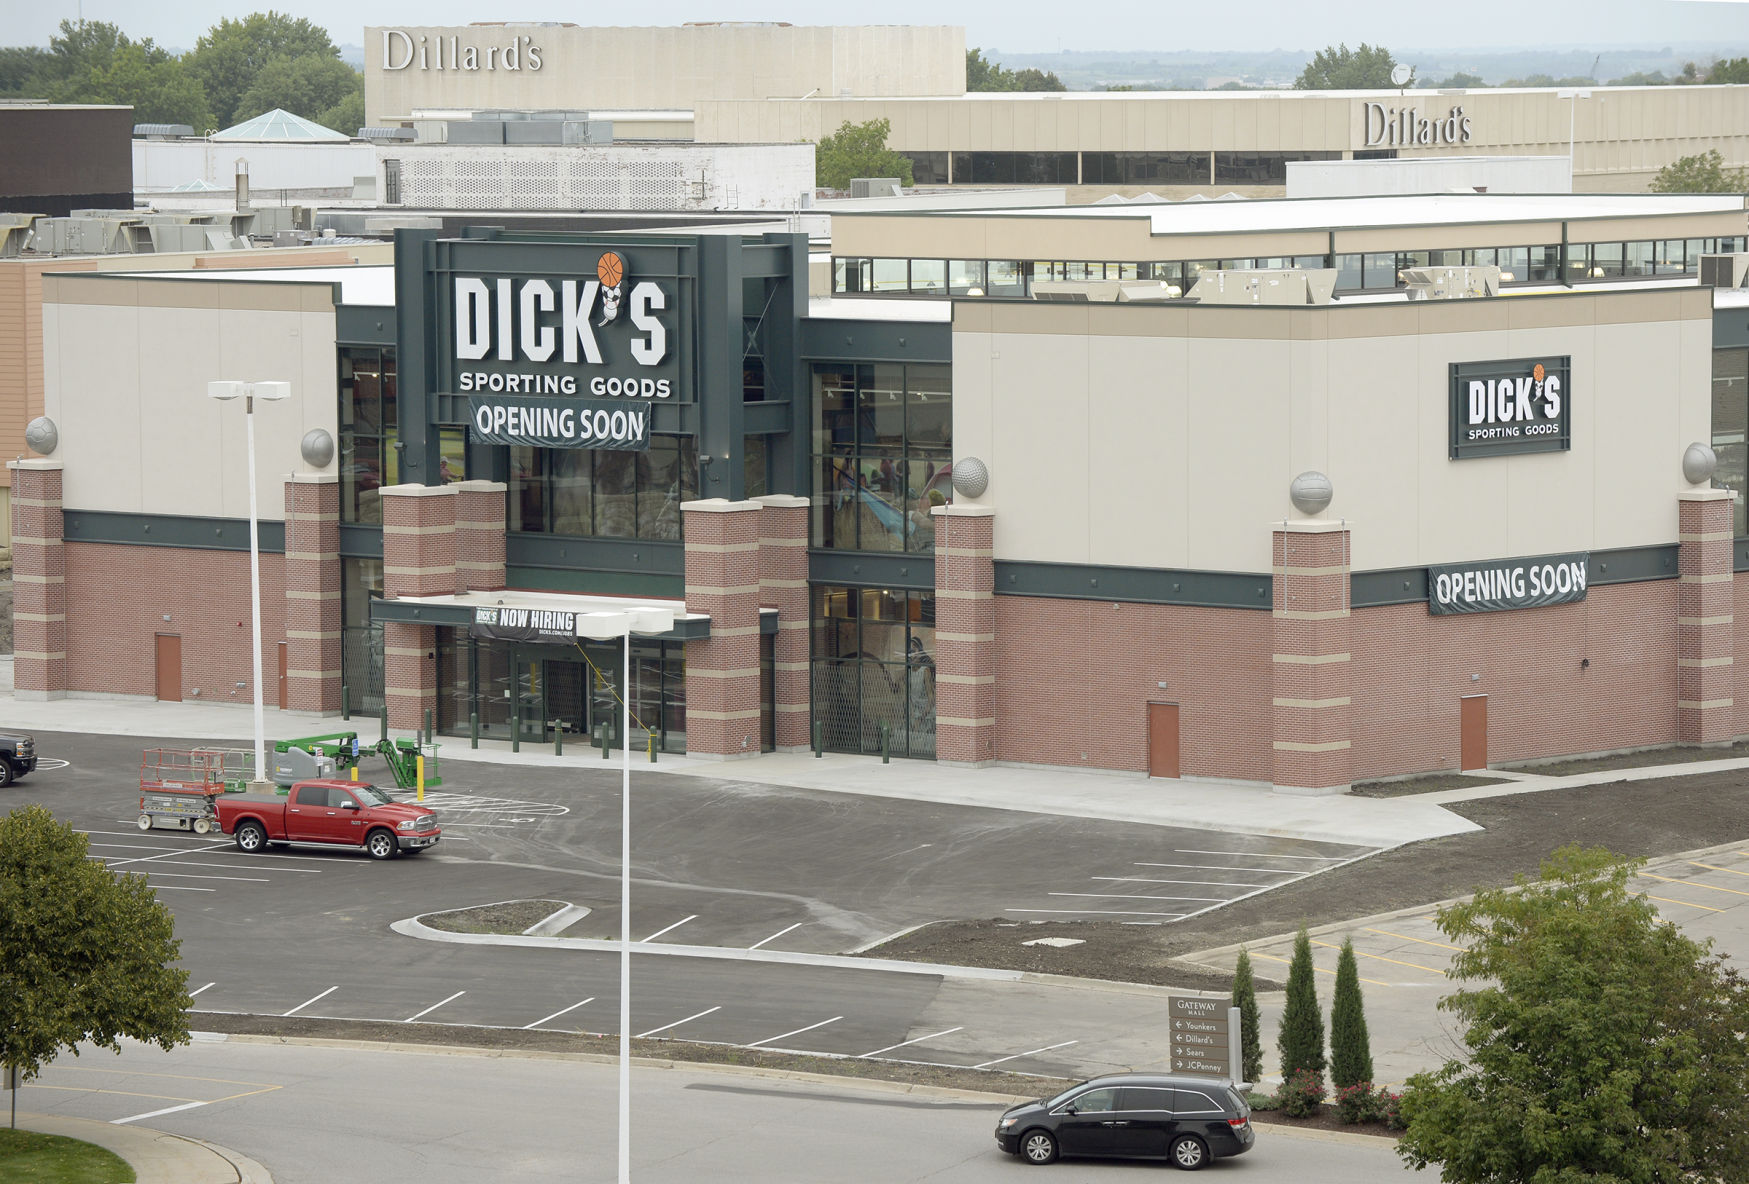 The Cleveland Research Downgrades Dick's Sporting Goods Inc (DKS) to Hold